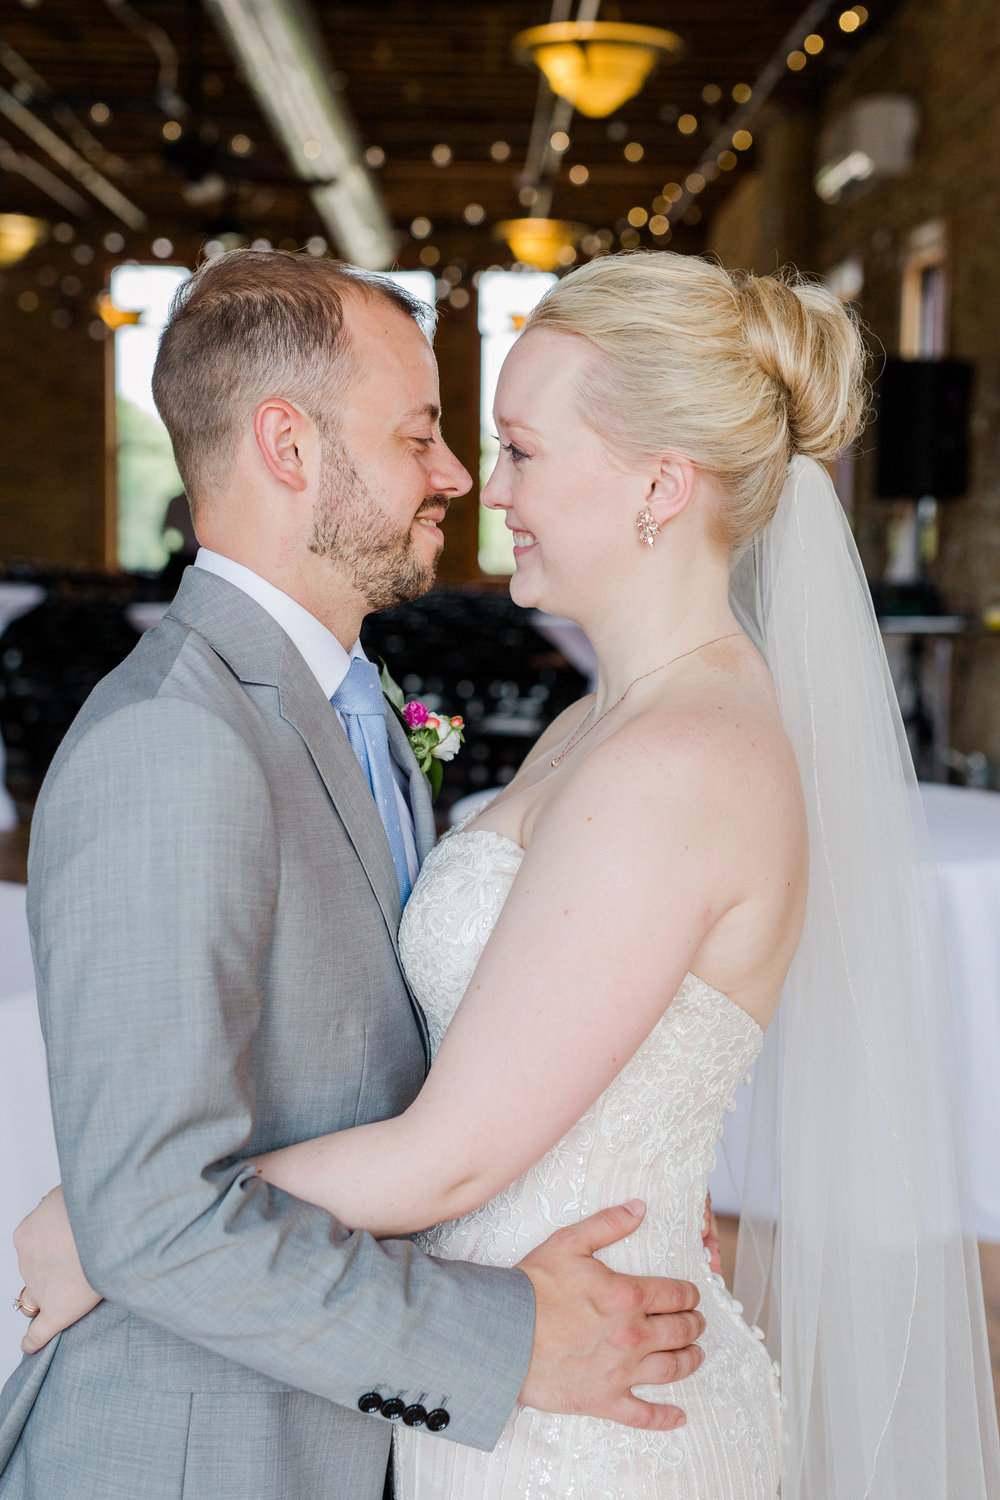 Jill + John :: Kristen Dyer :: Sixpence Events bride and groom facing each other portrait